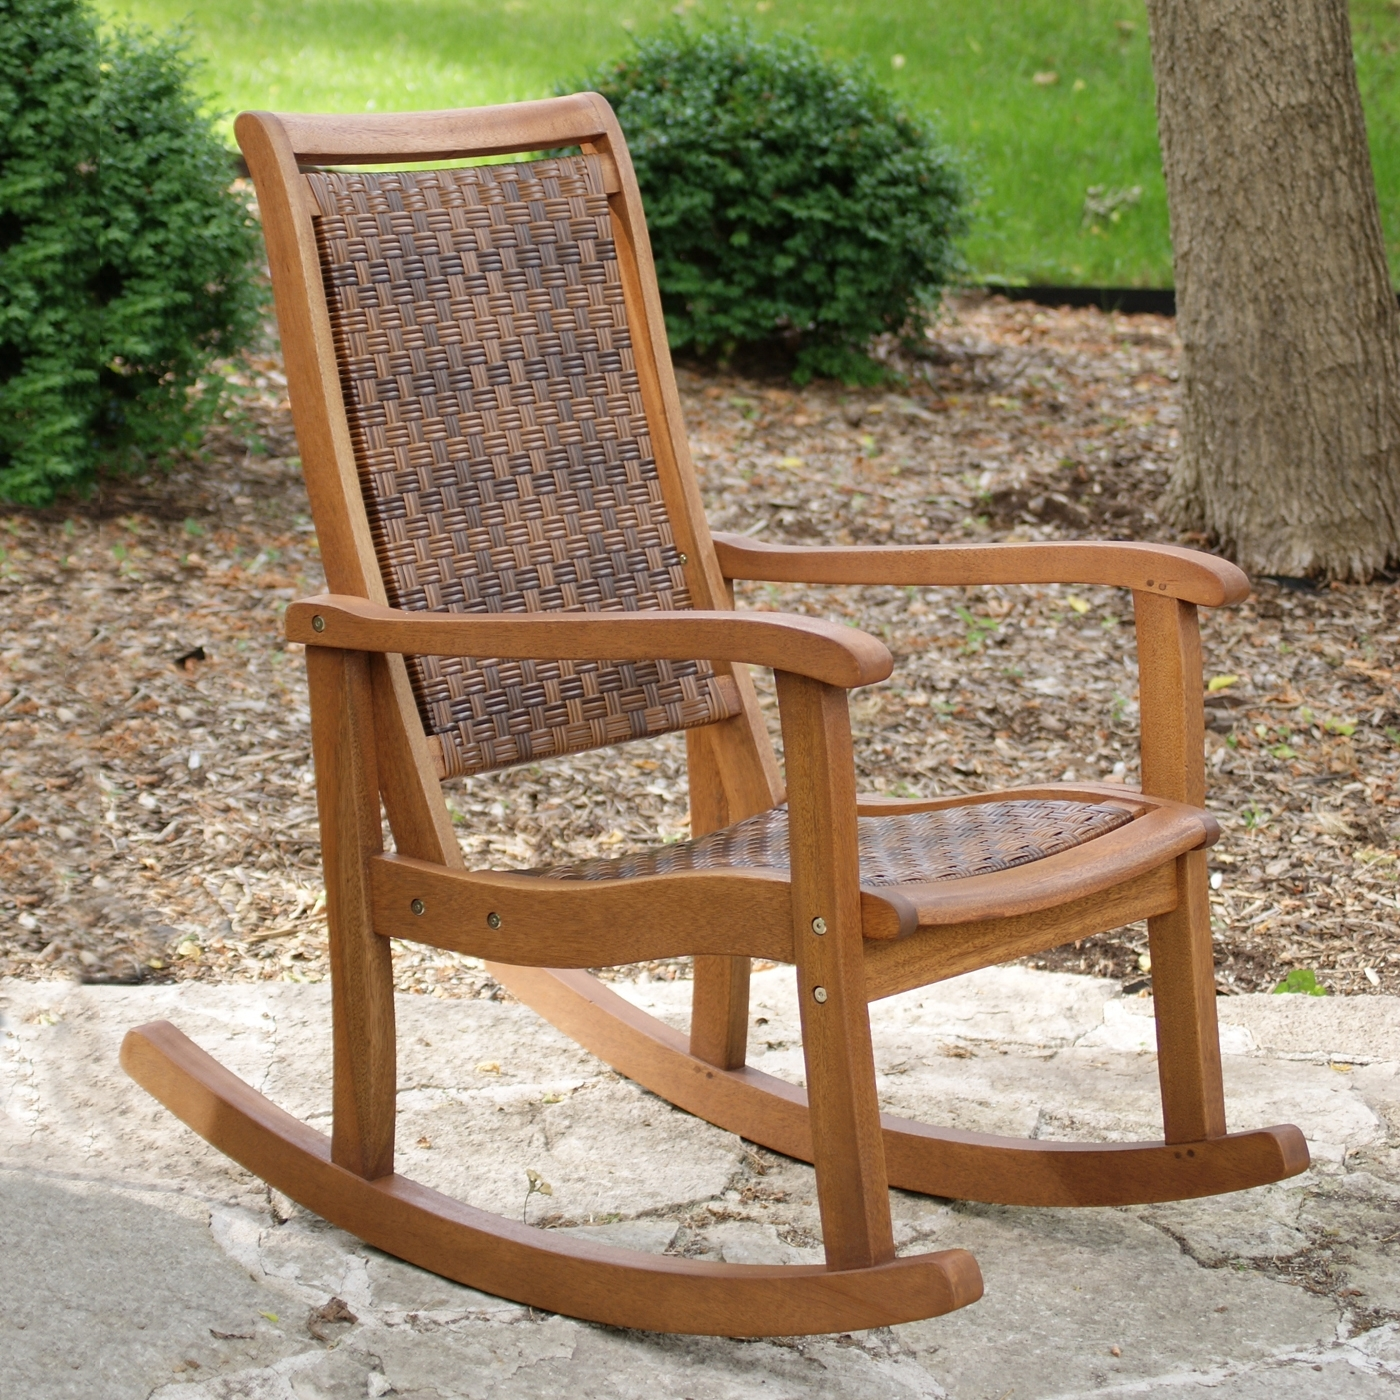 Outdoor Interiors 21095Rc Outdoor Rocking Chair | Lowe's Canada Pertaining To Outdoor Rocking Chairs (View 4 of 15)